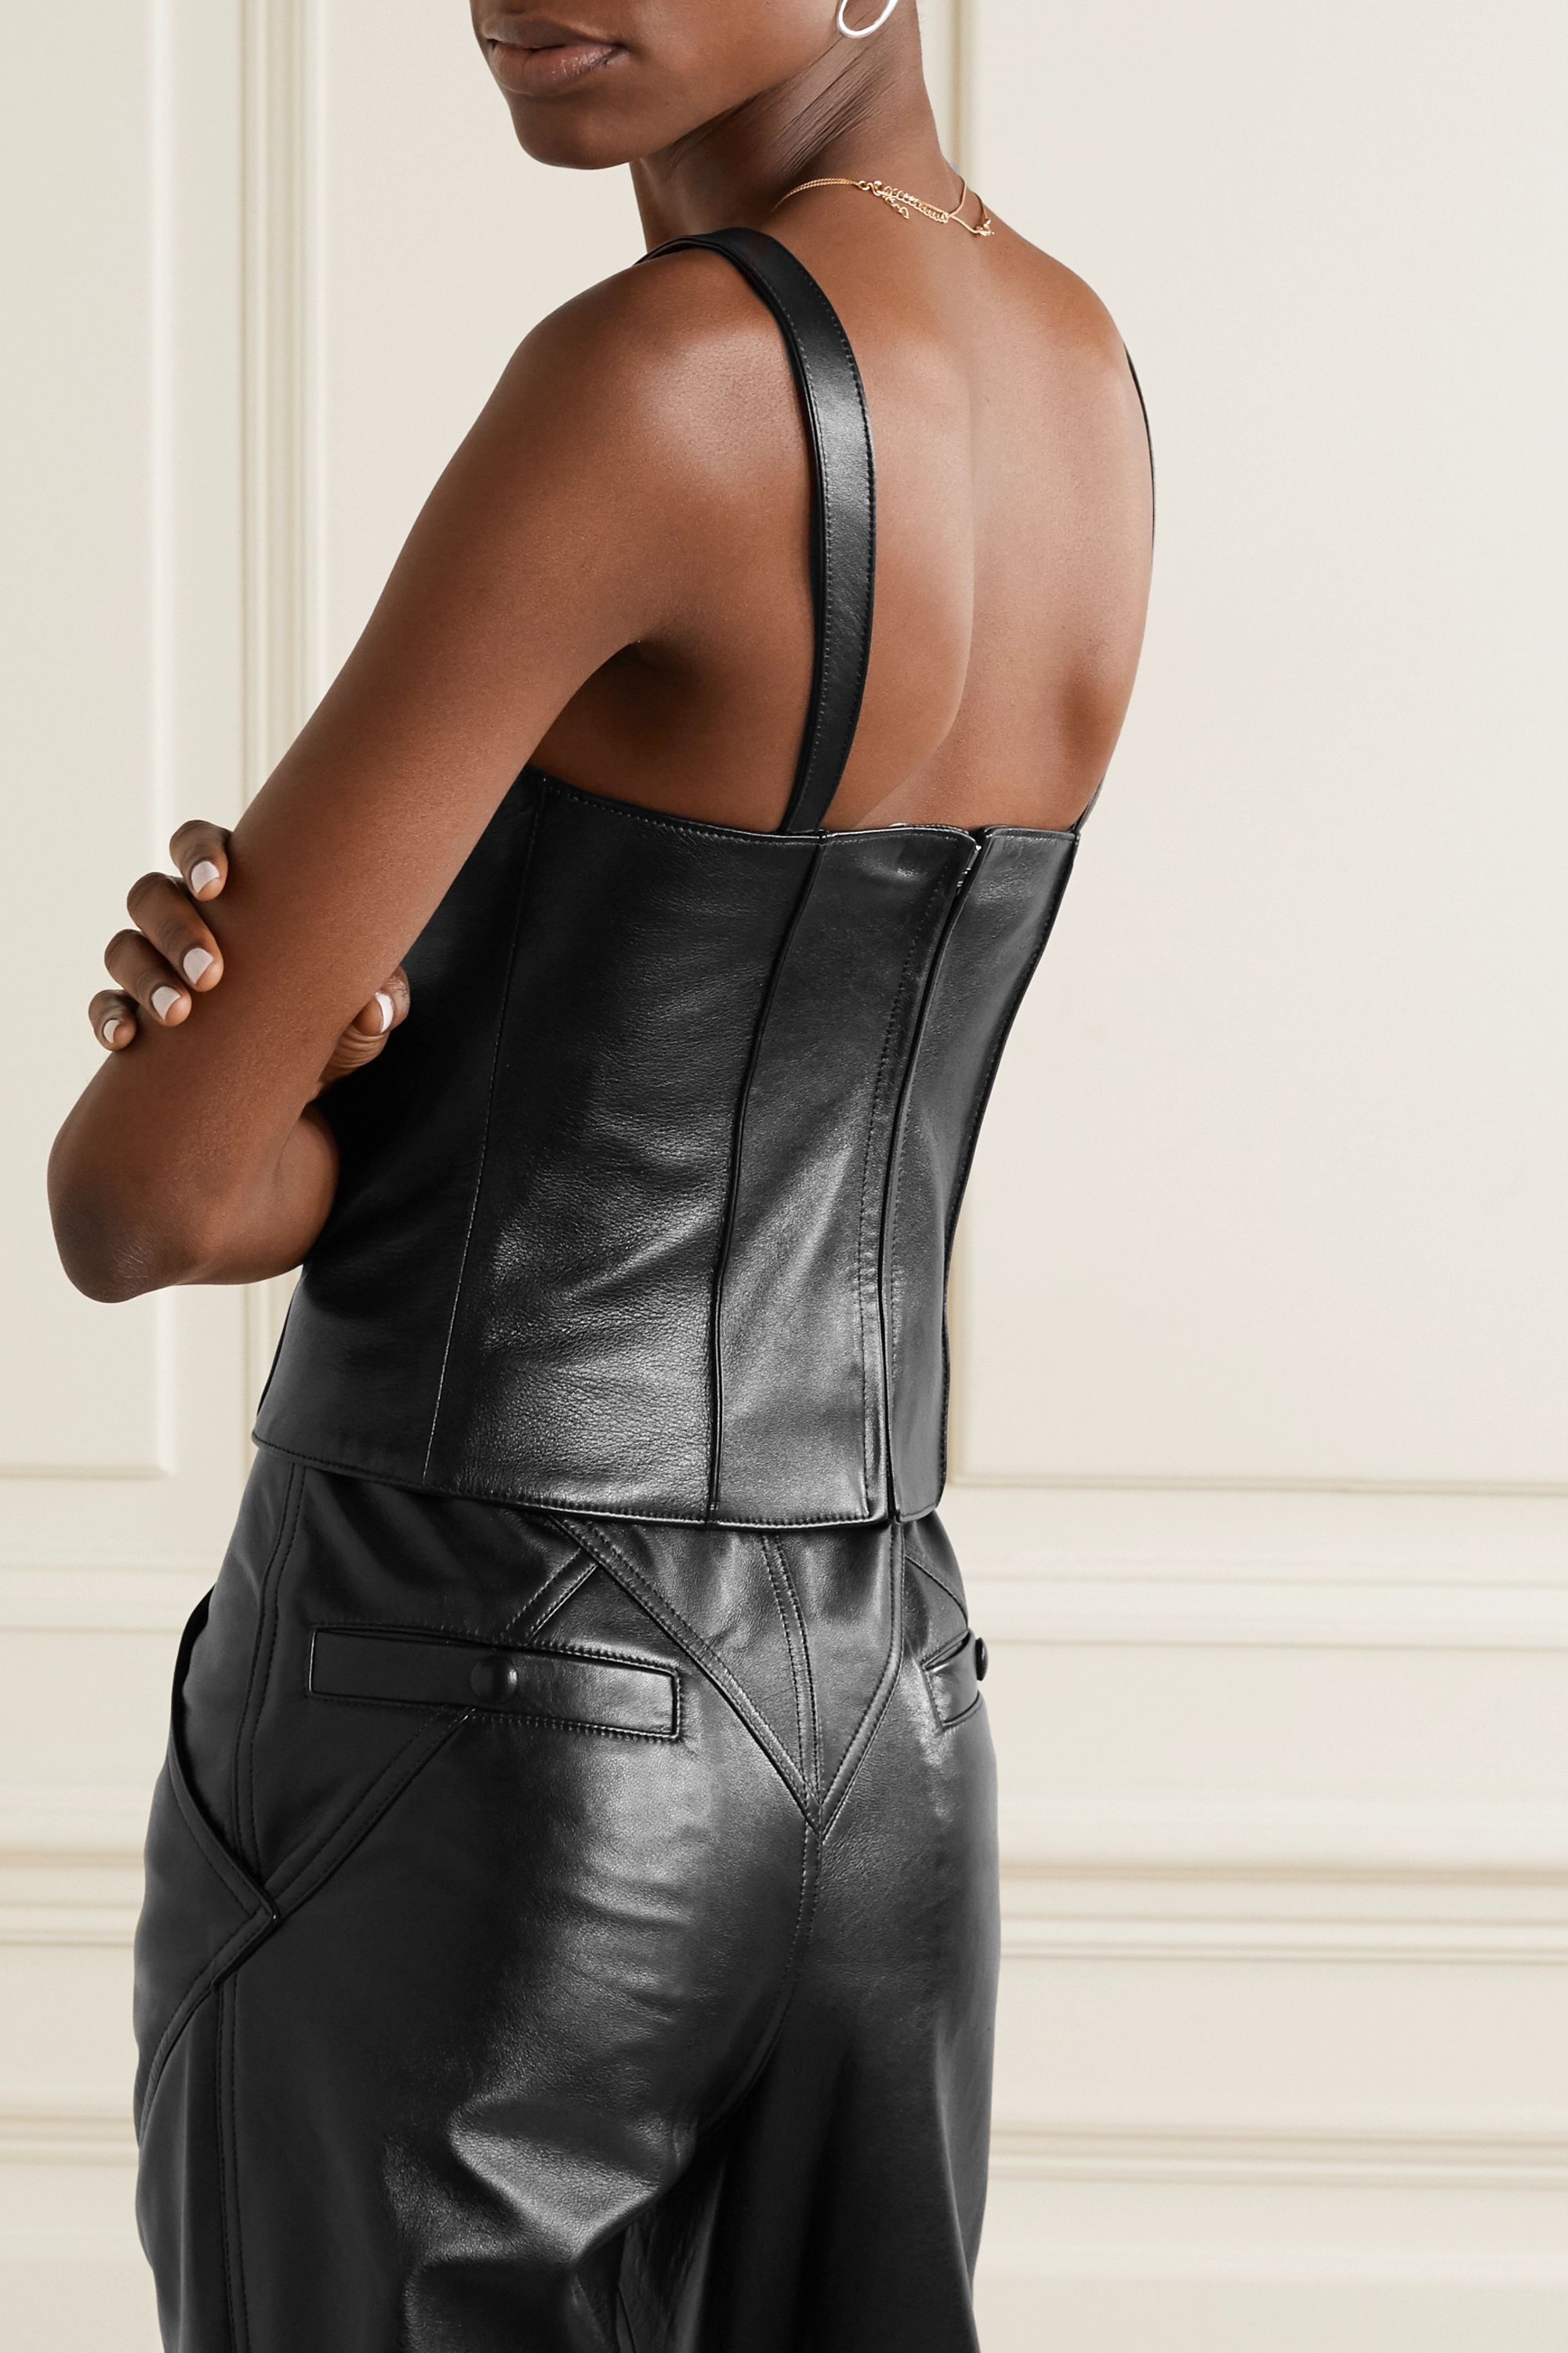 Isabel Marant Xanti leather bustier top